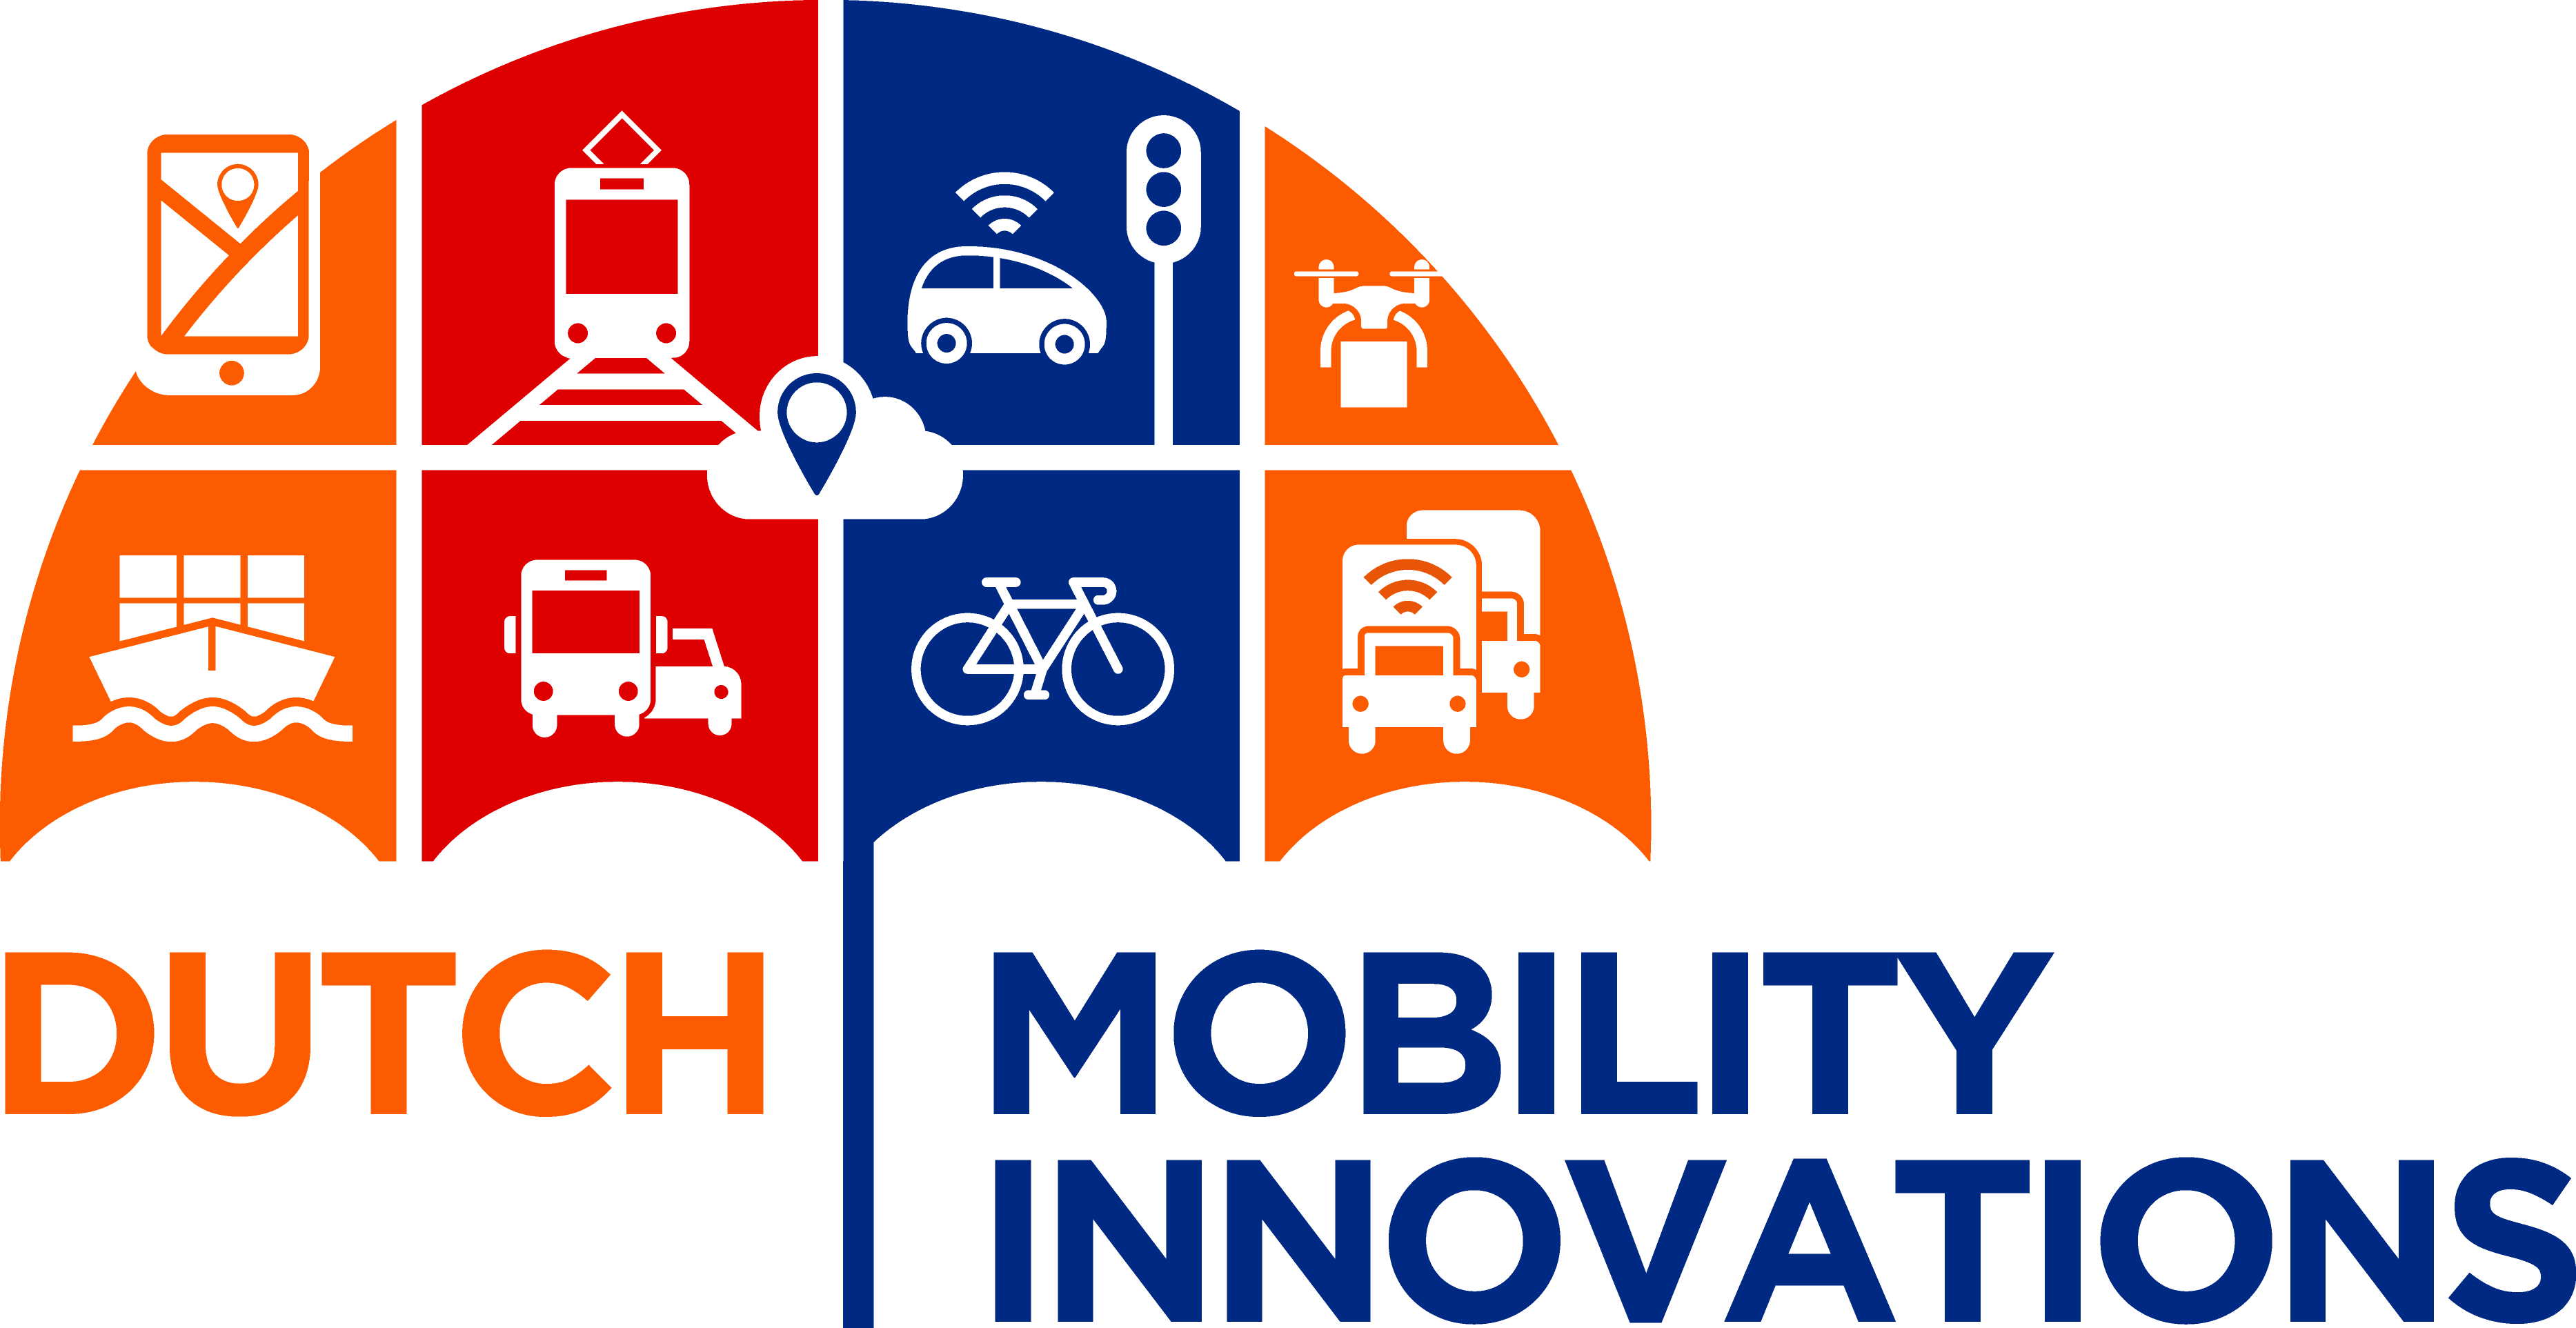 Dutch Mobility Innovations